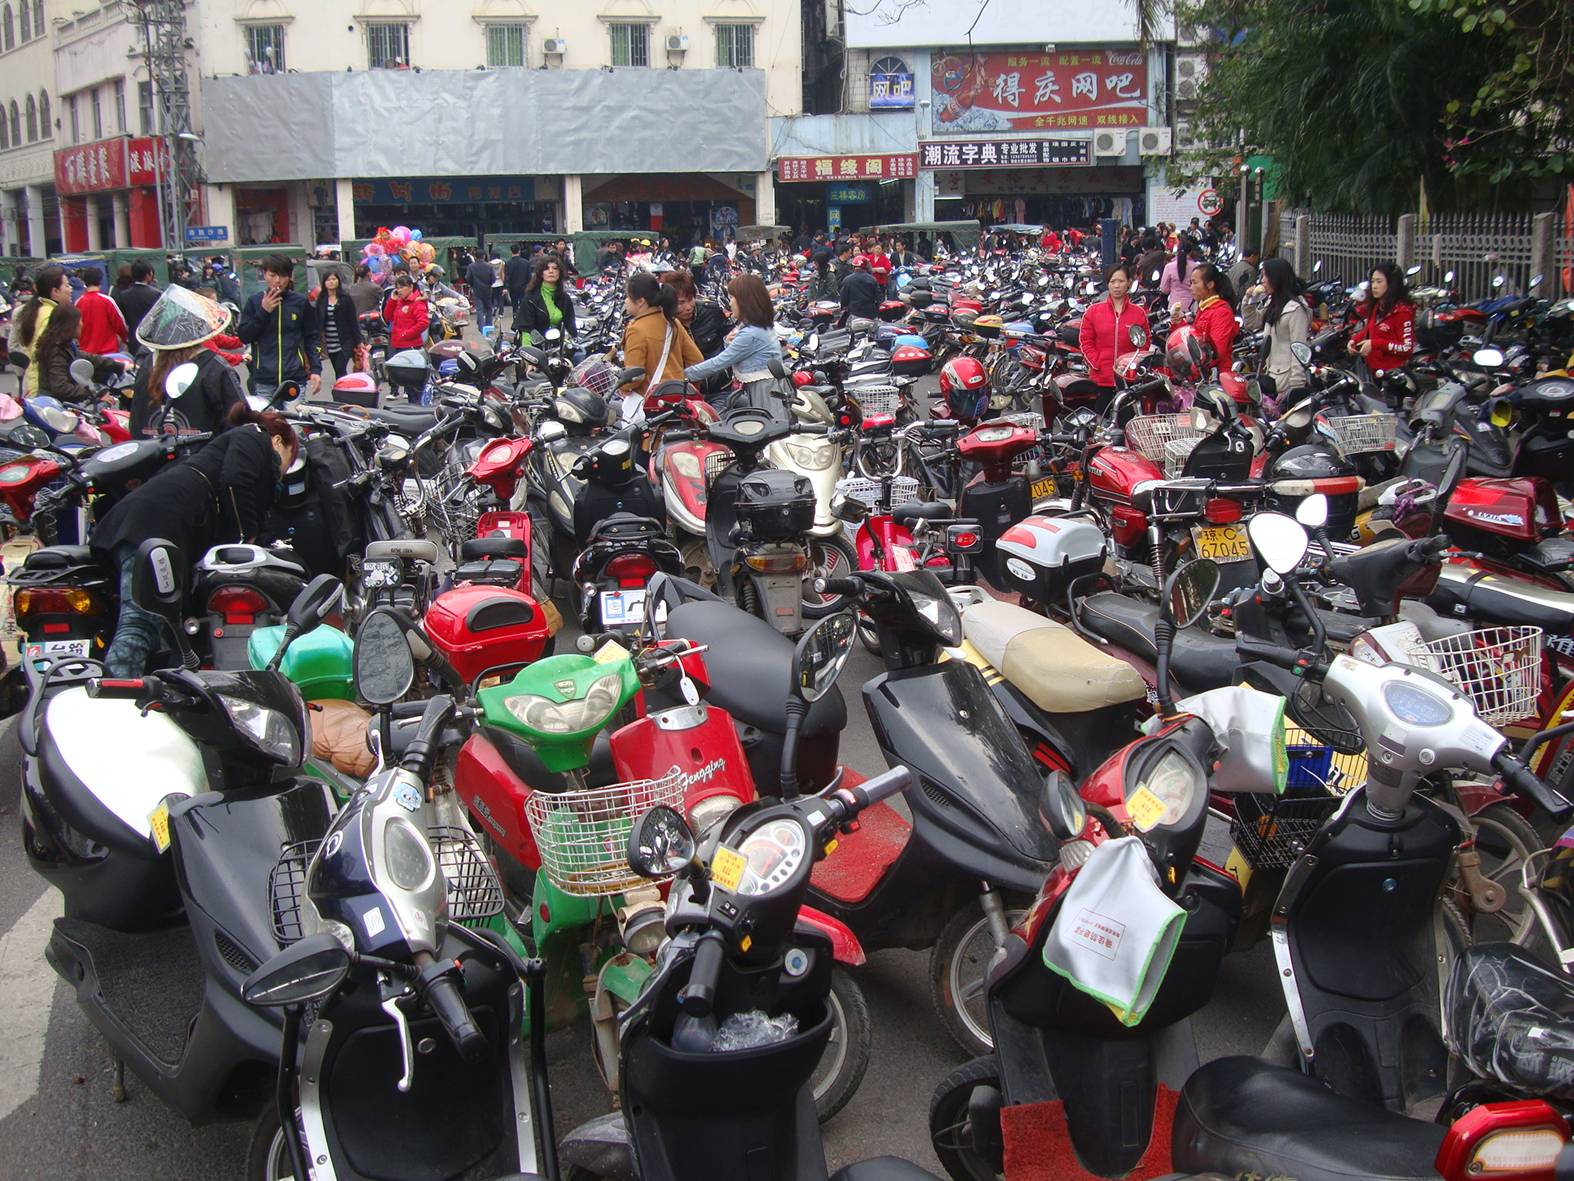 Picture: The e-bike parking lot outside the market street.  Haikou on Hainan Island.  China